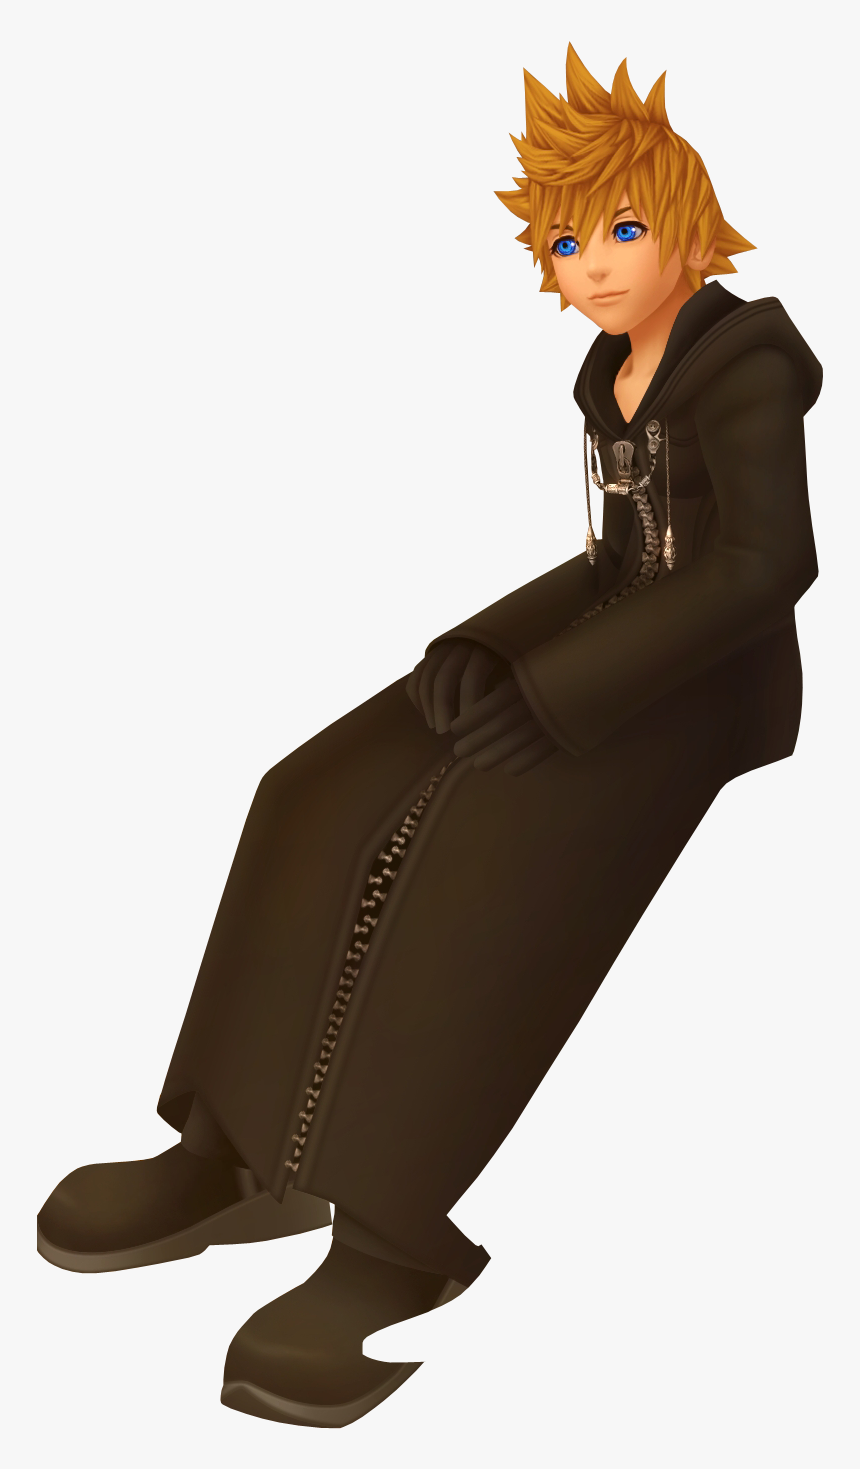 Kingdom Hearts 358 2 Days Roxas Png, Transparent Png, Free Download